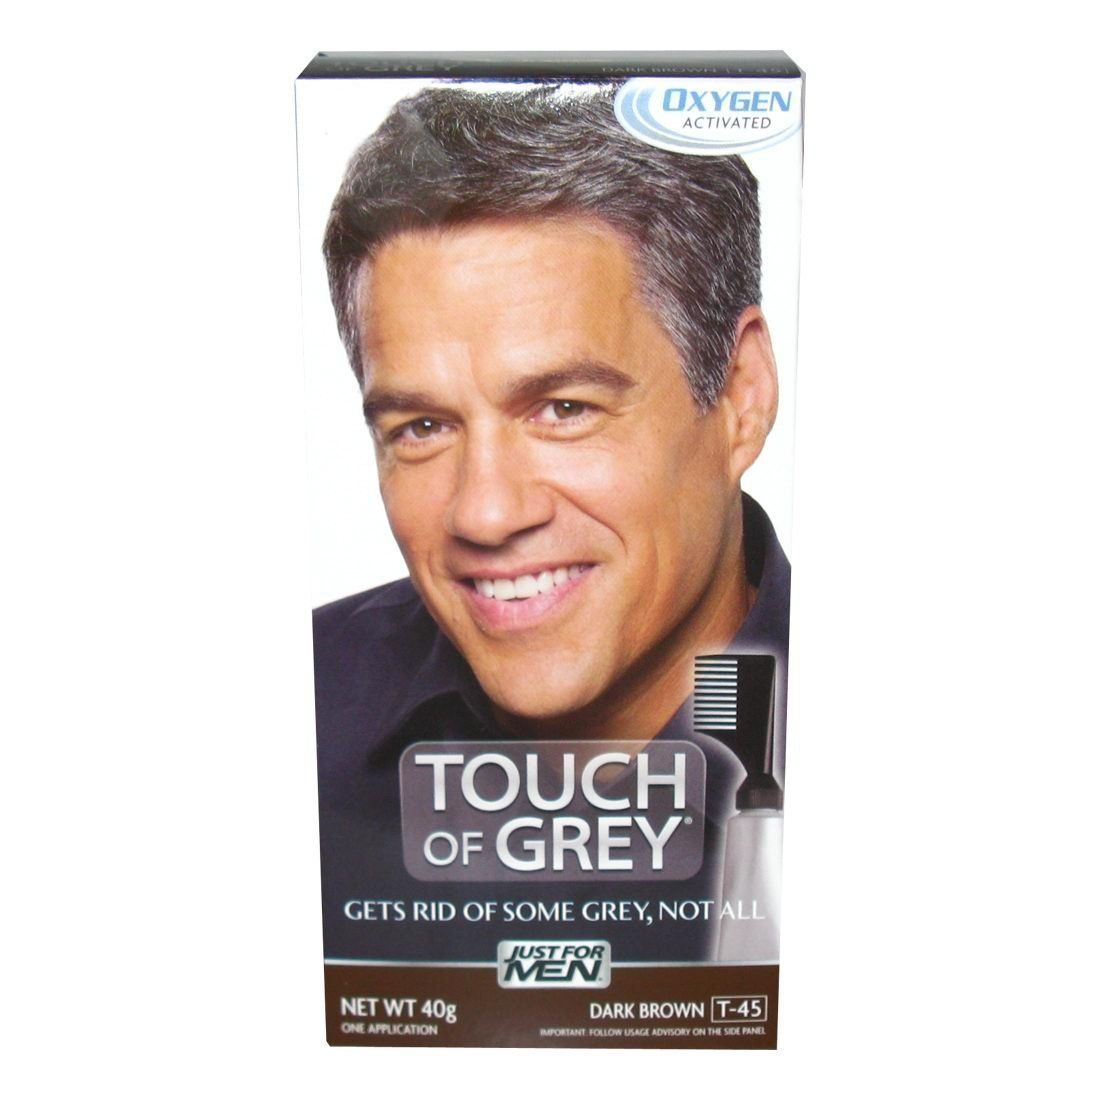 Just For Men Touch Of Grey Dark Brown-Grey T-45 40g >>> Be sure to ...